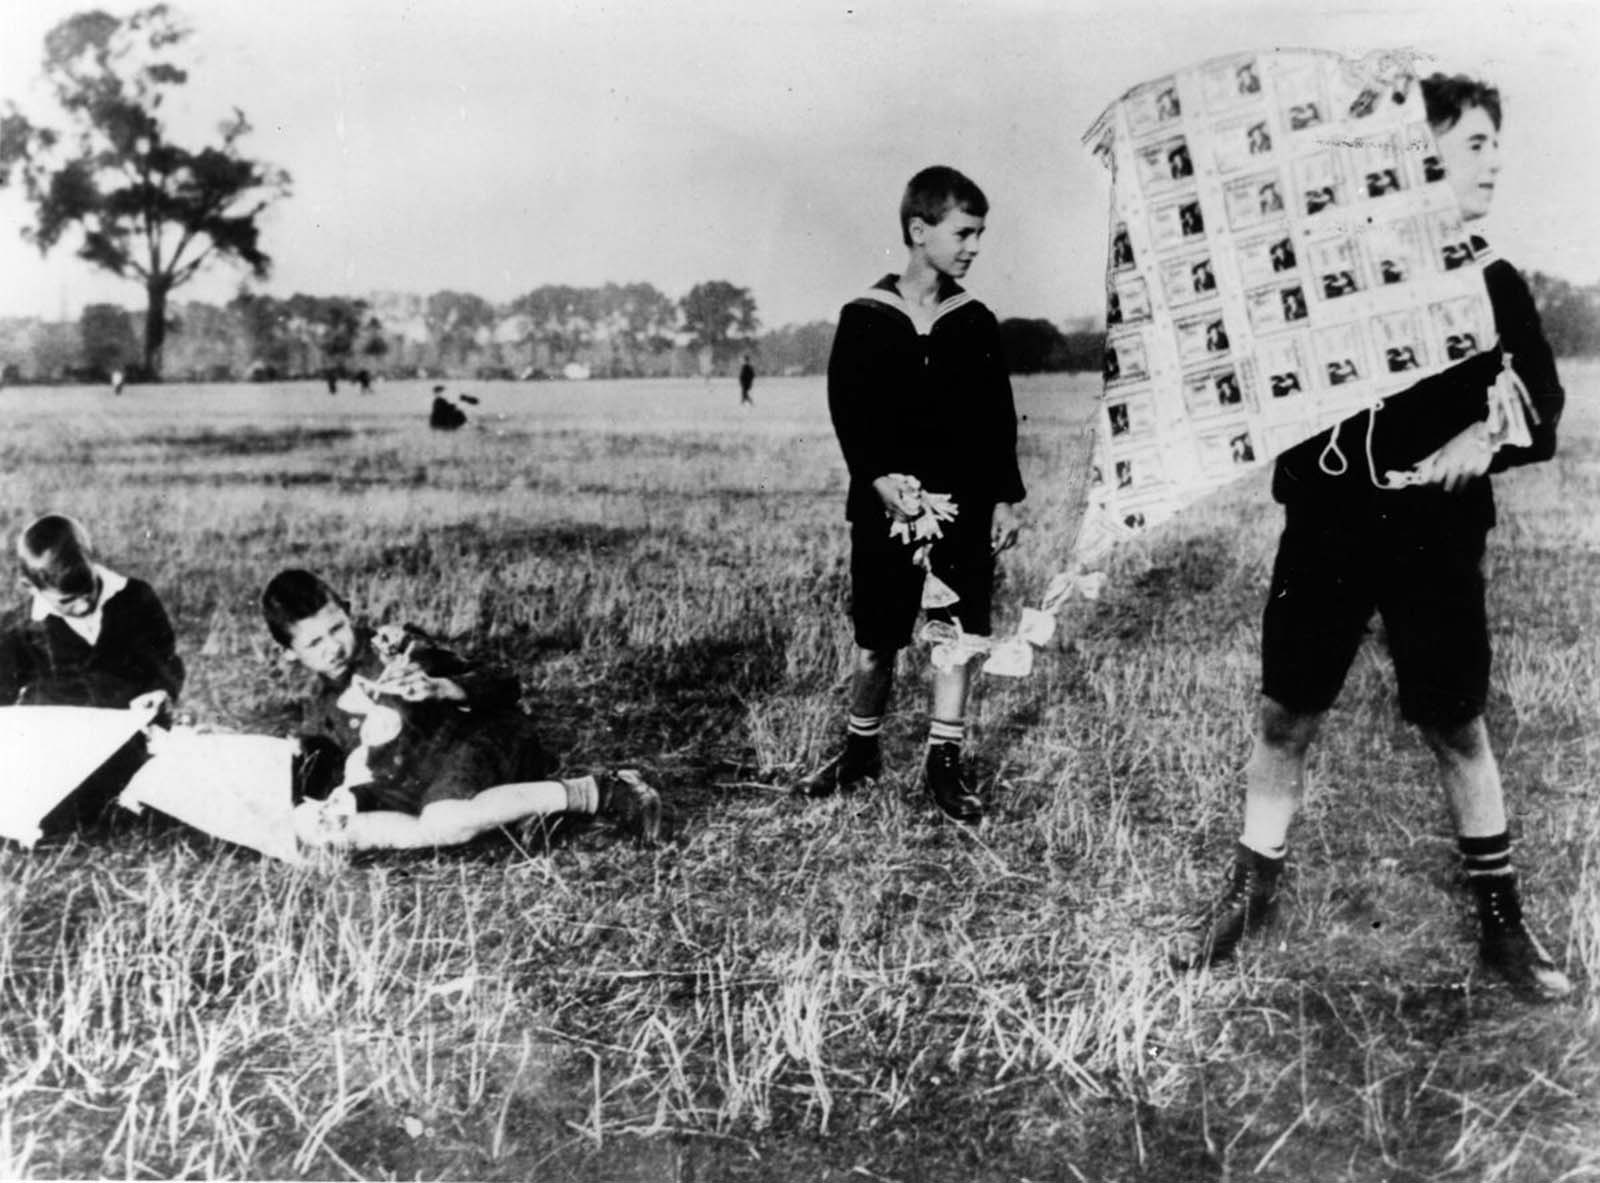 Boys fly a kite made of banknotes. 1922.